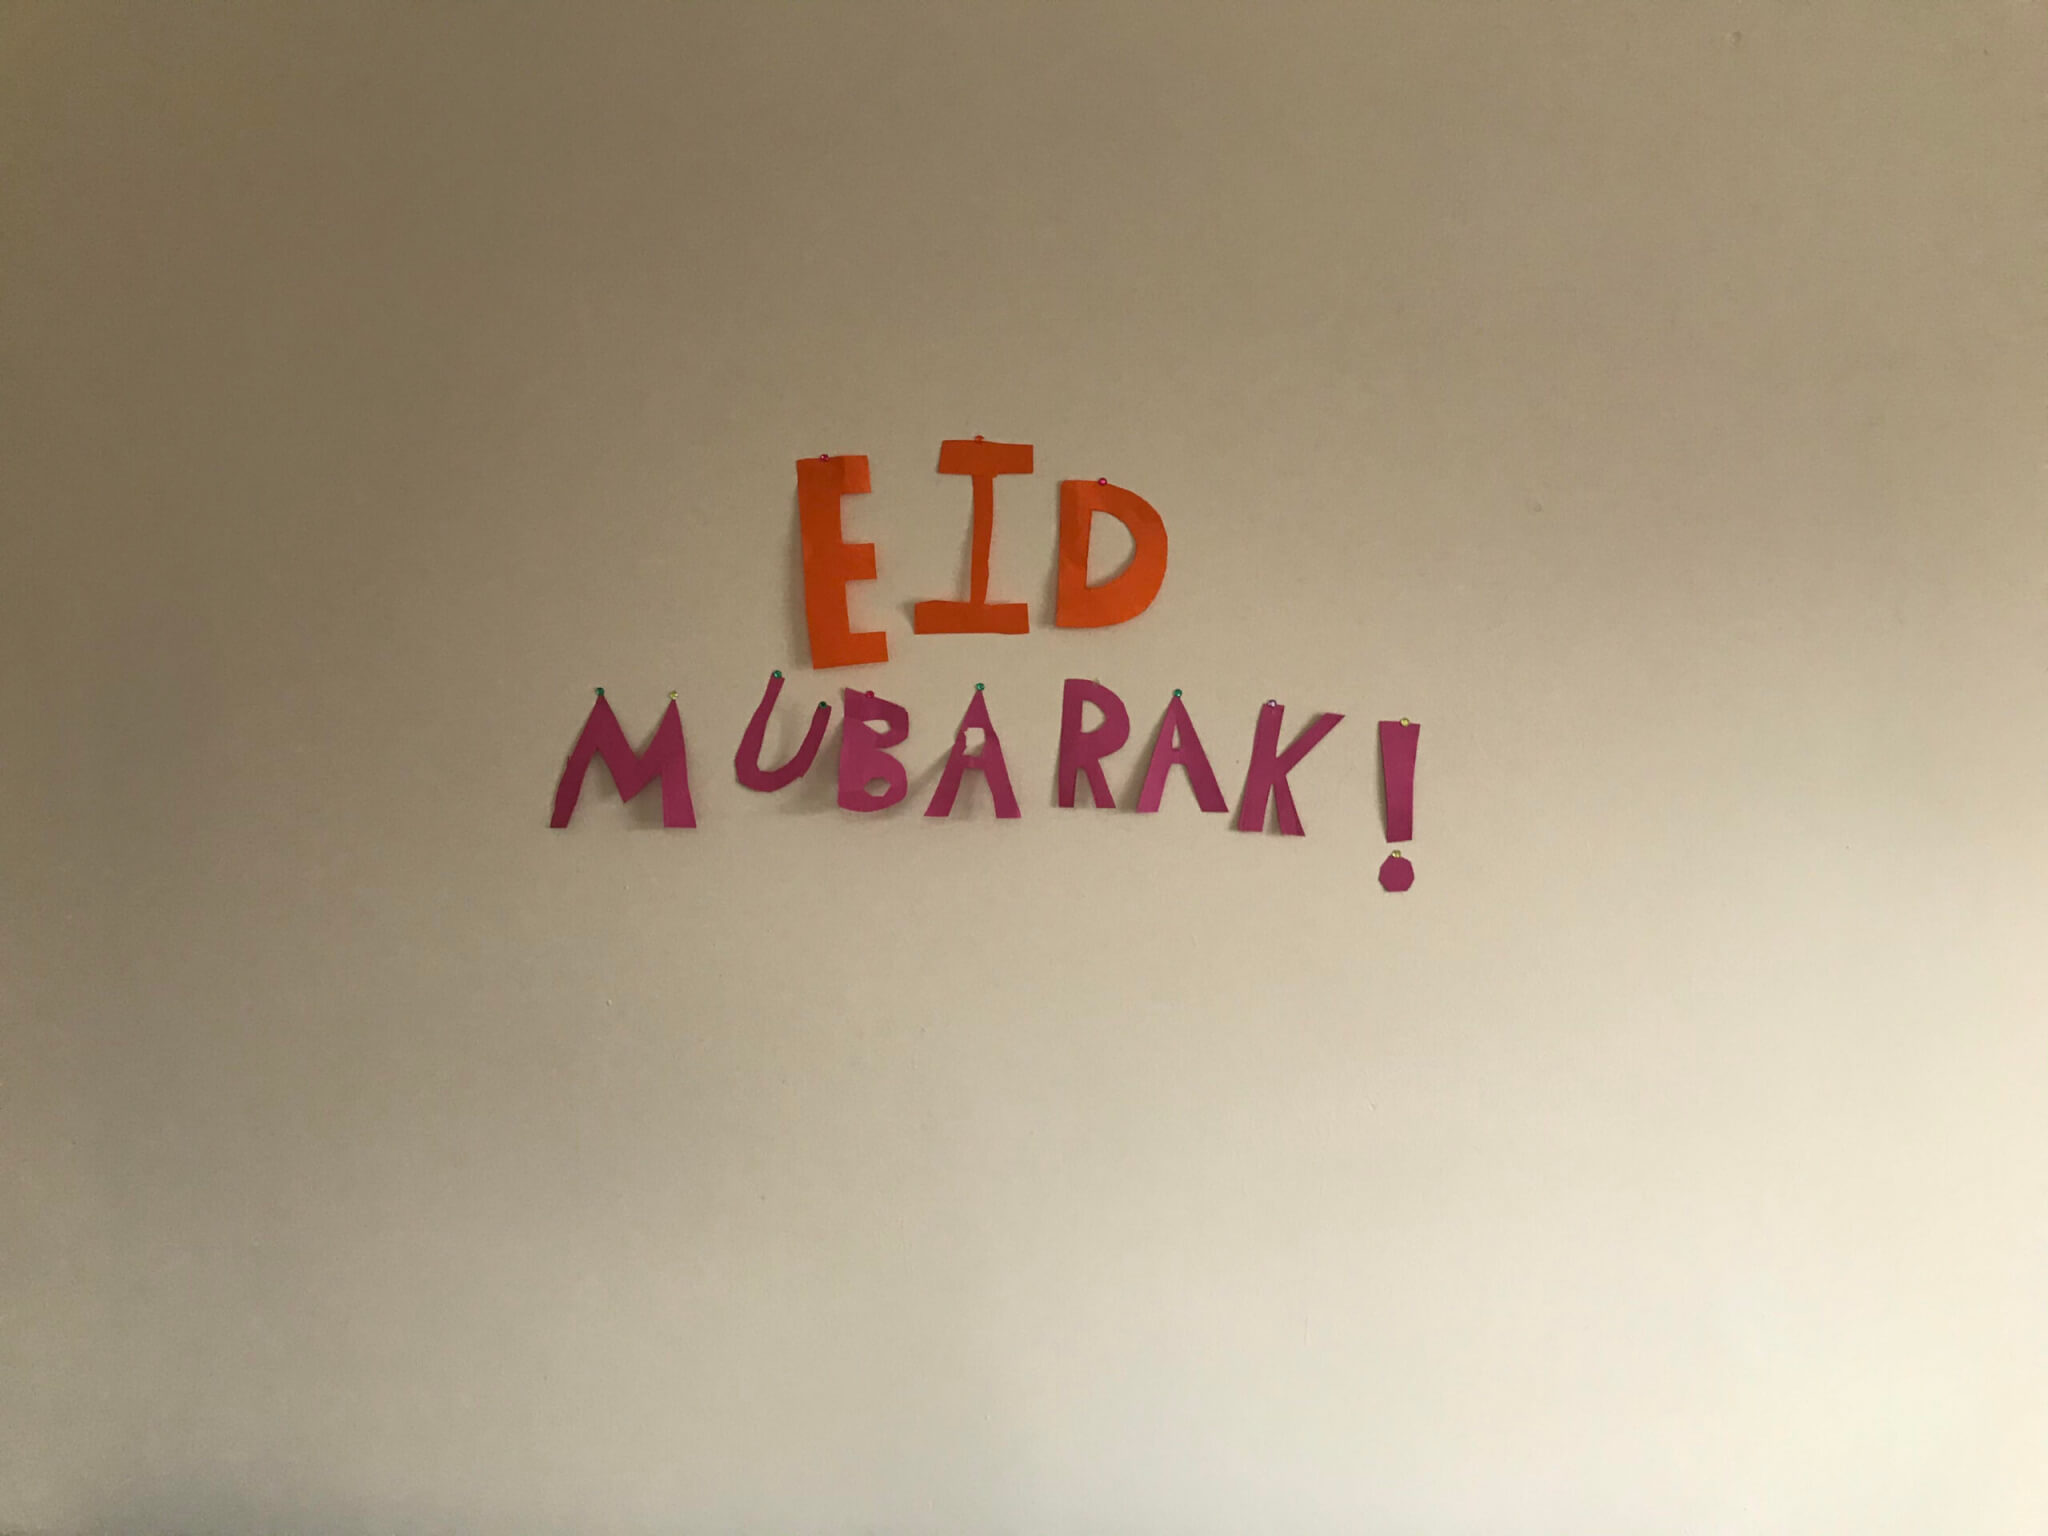 01: A Syrian refugee family describes their experience of Eid during lockdown.